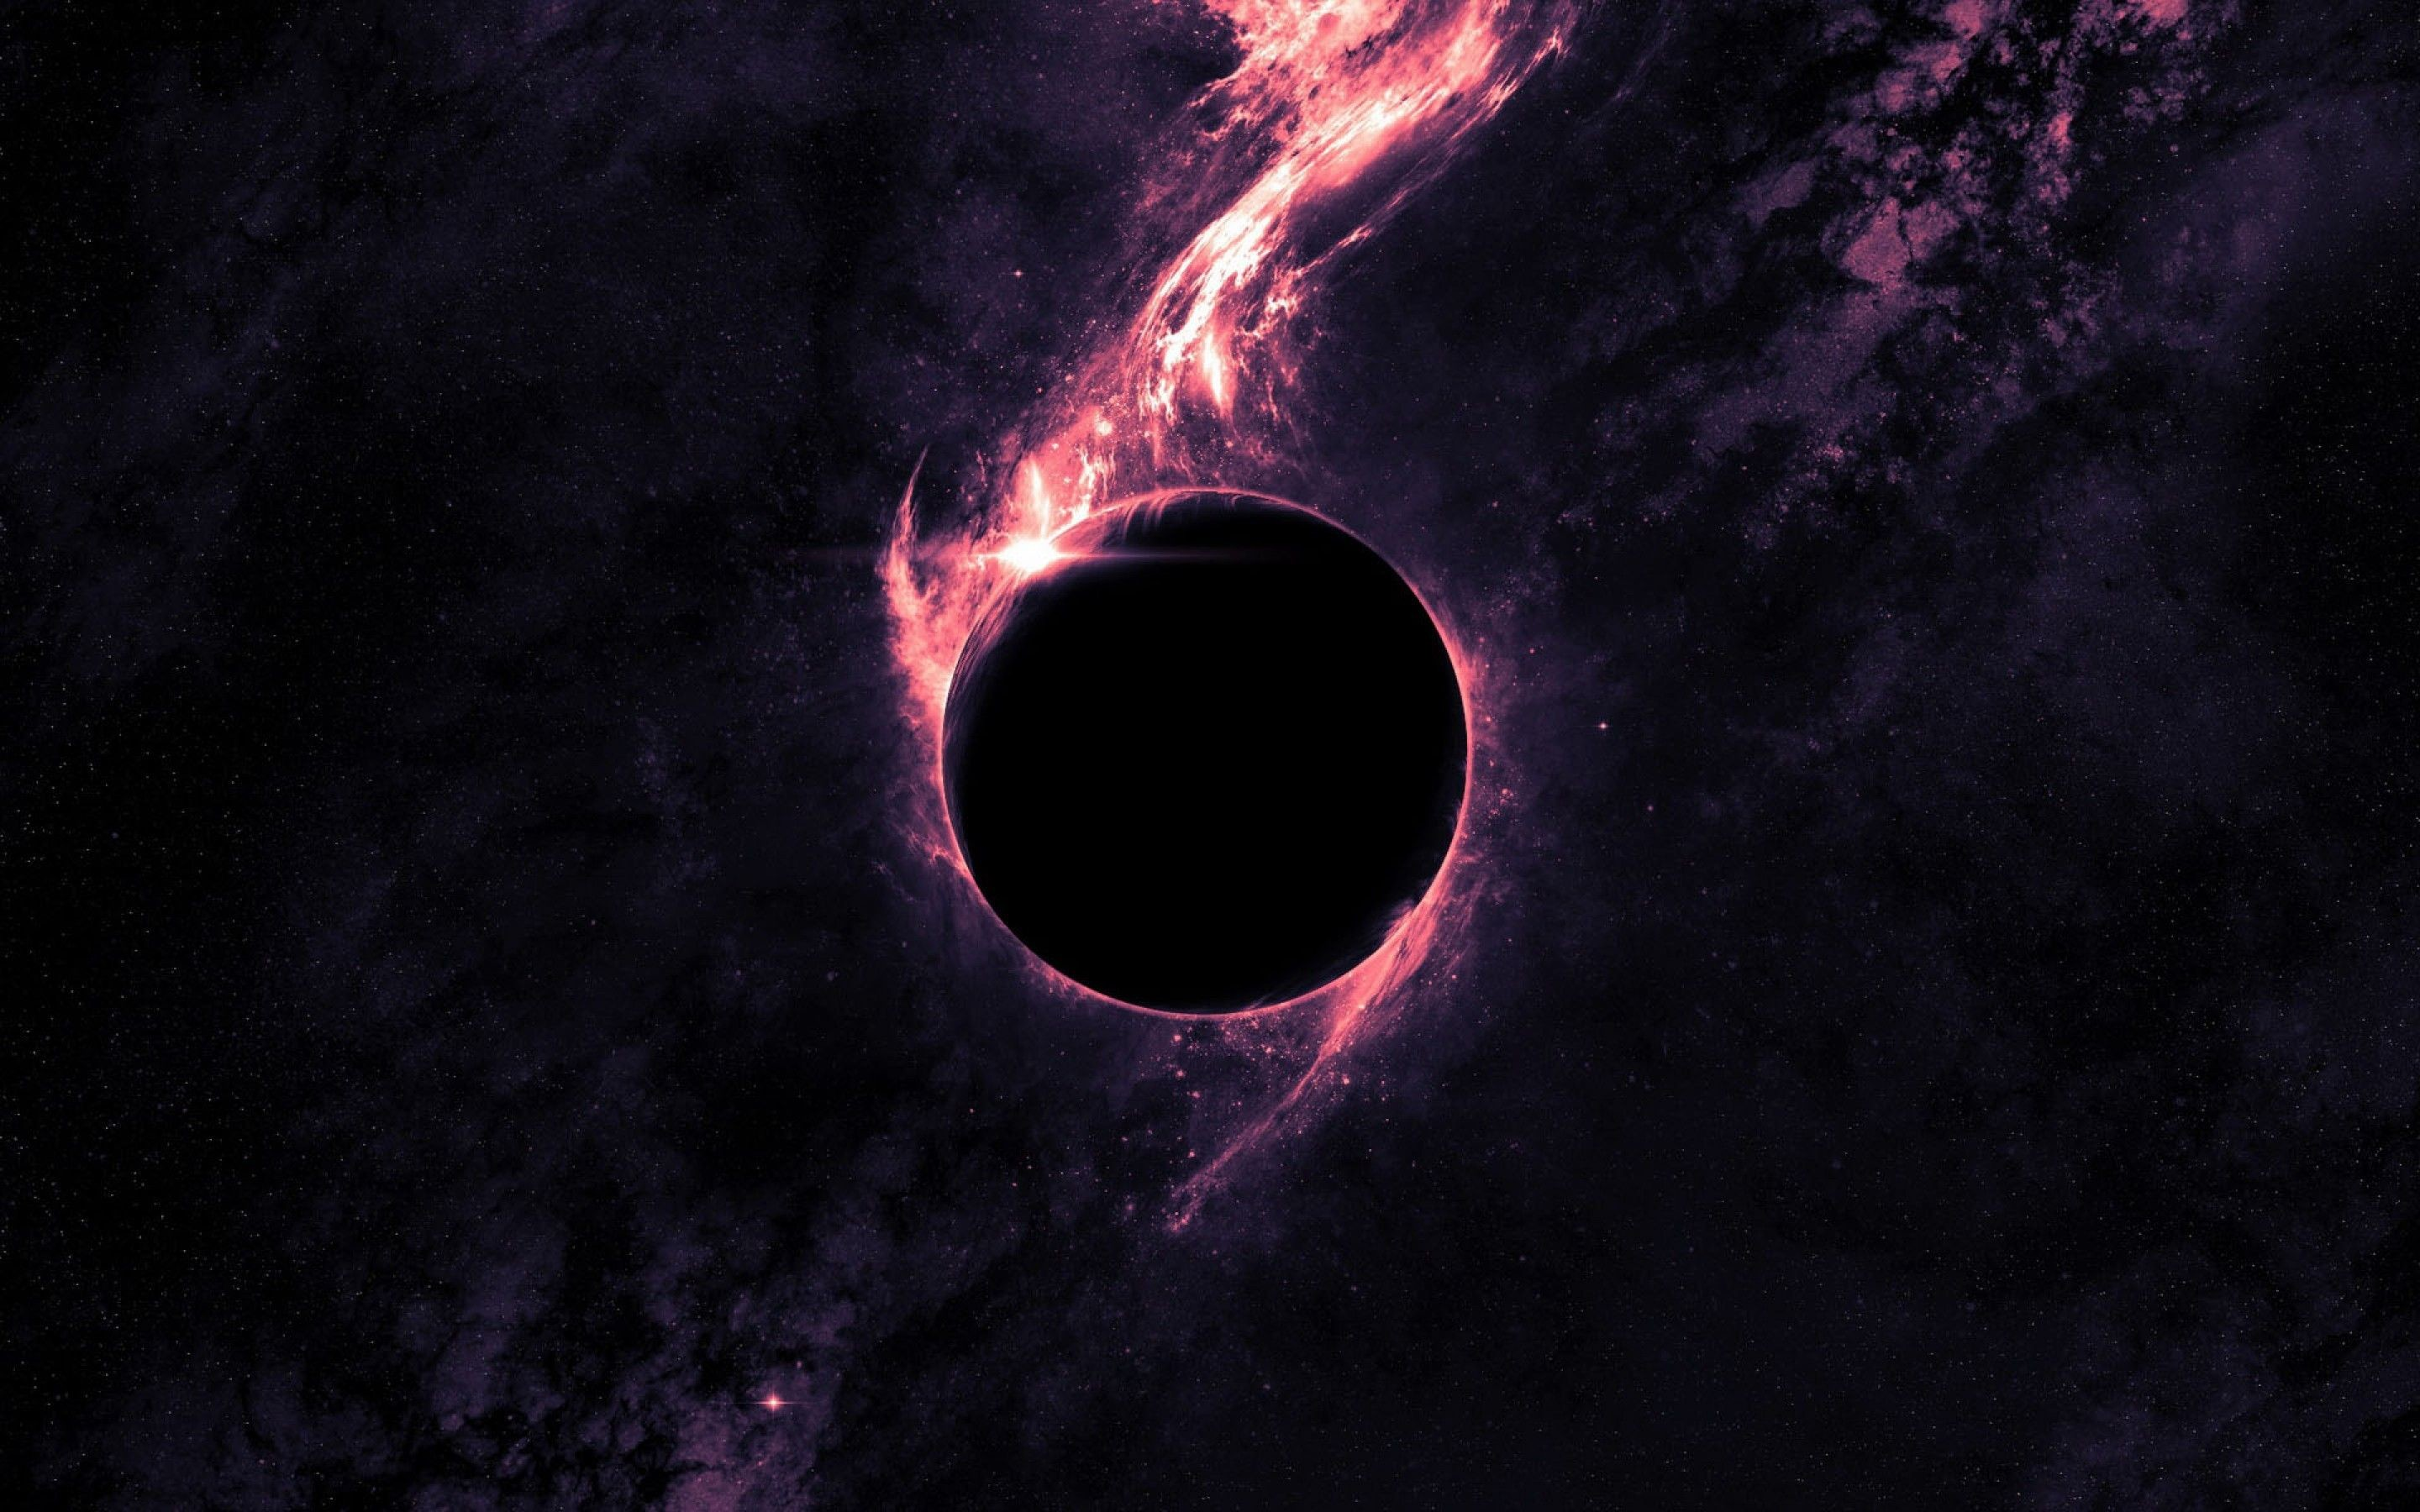 2880x1800 - Black Hole Wallpapers 32